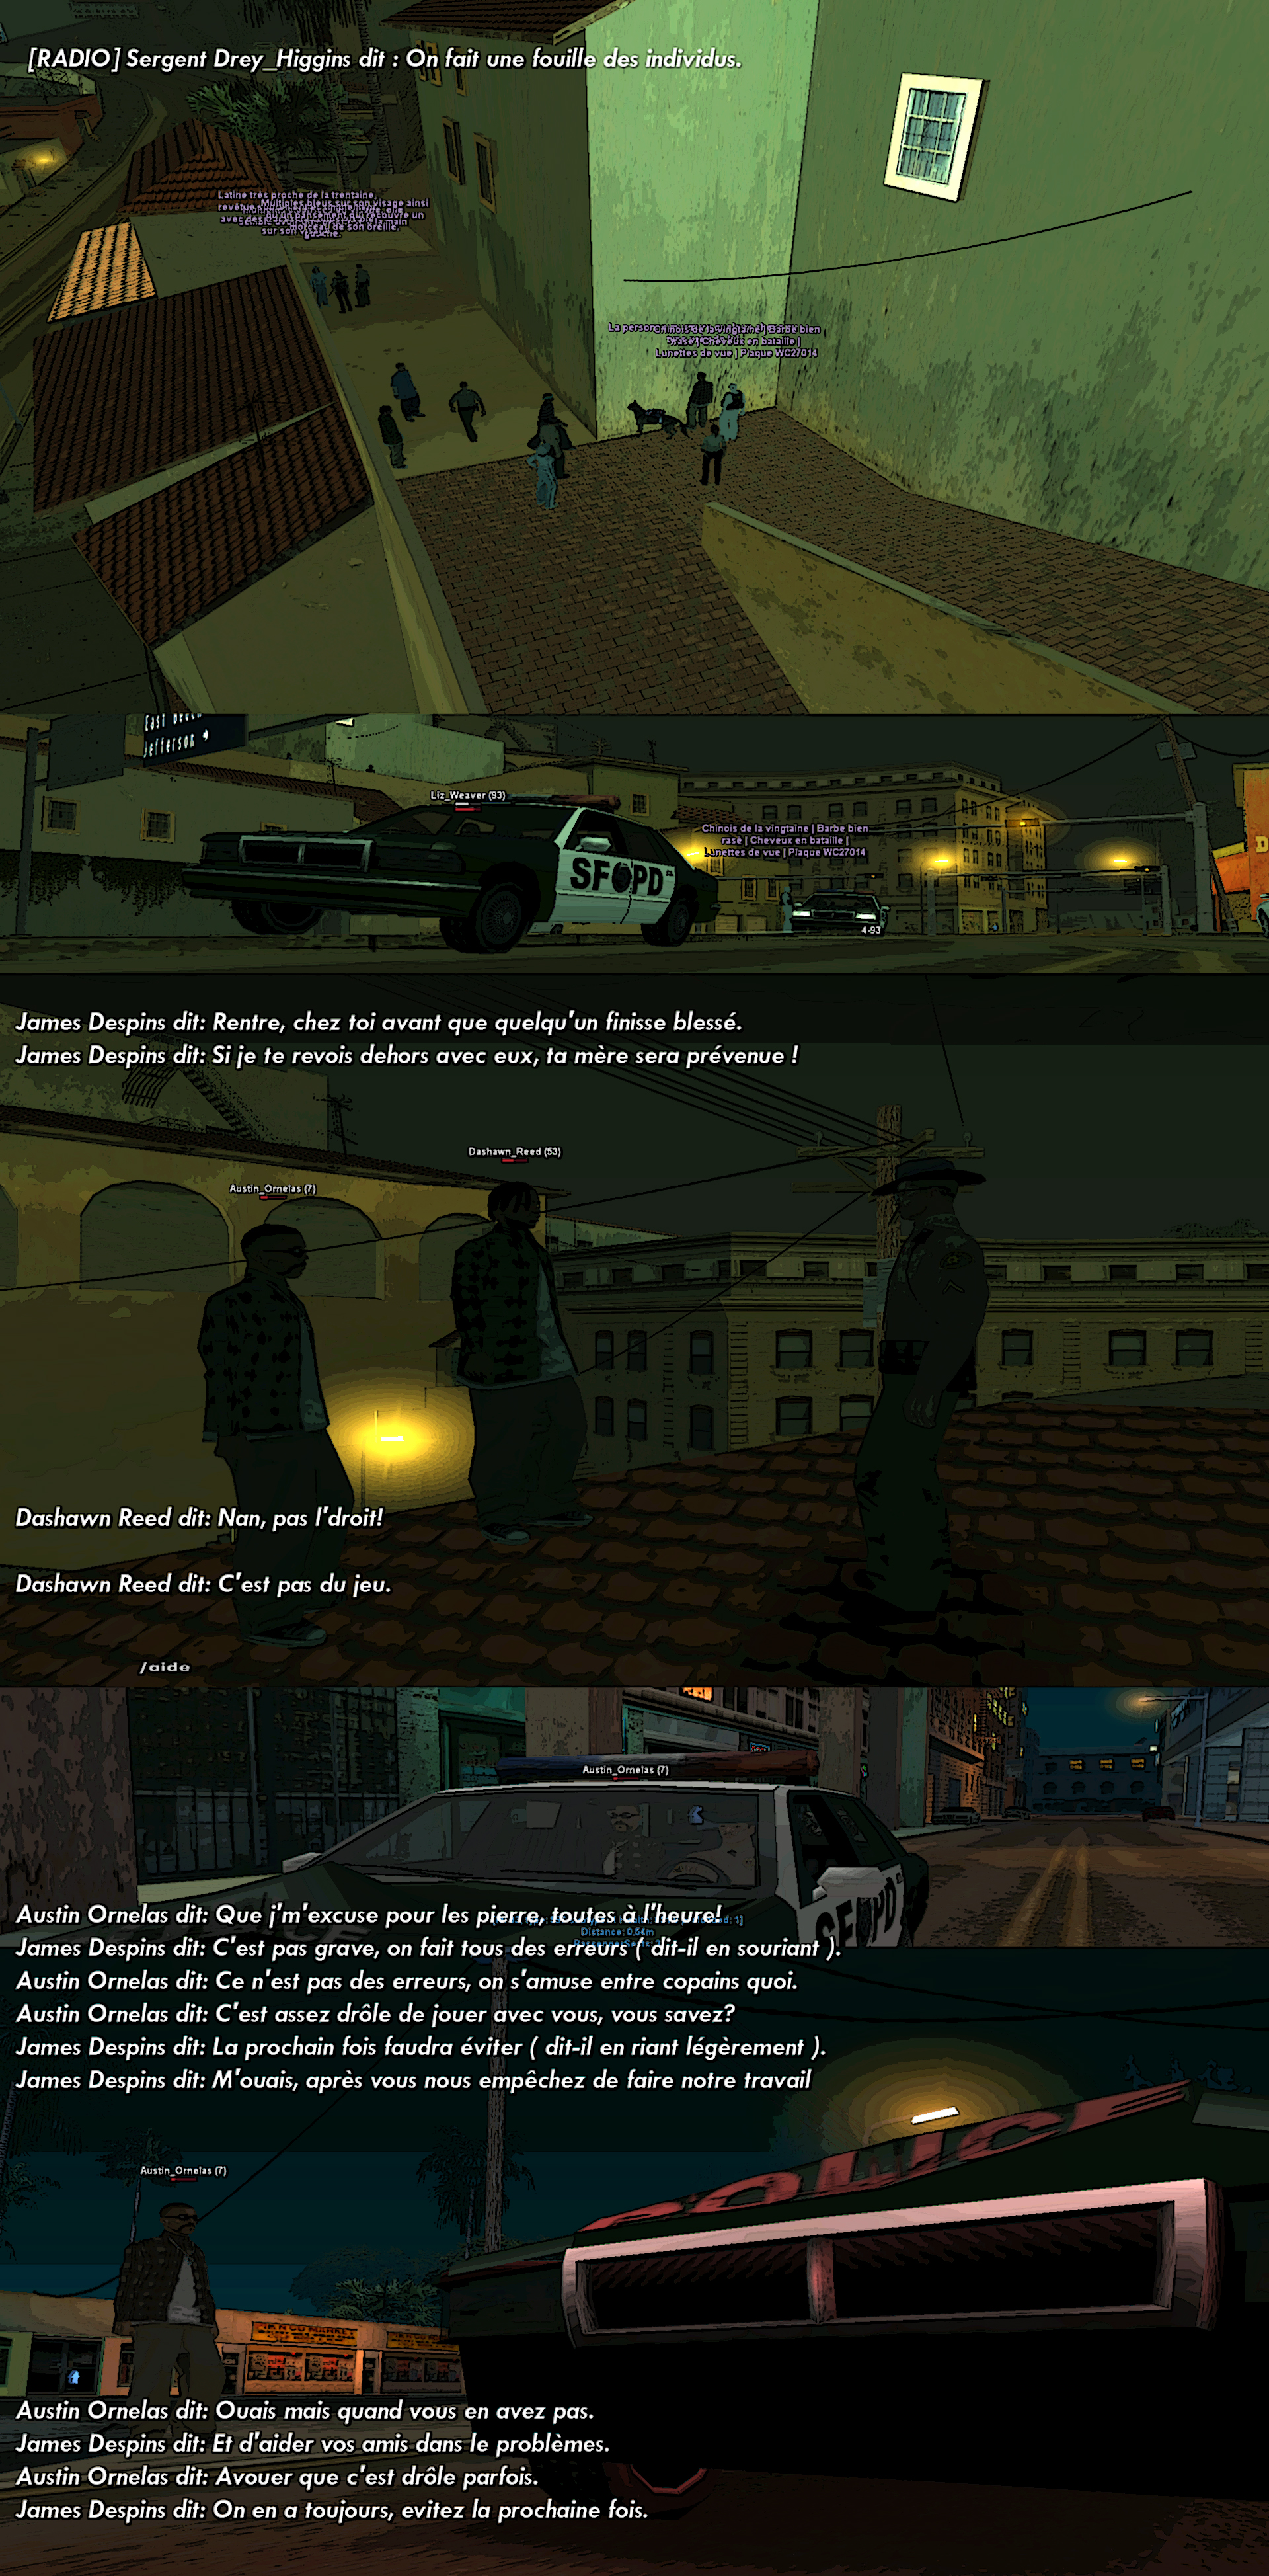 Los Santos Sheriff's Department - A tradition of service (8) 1517534566-lssd1